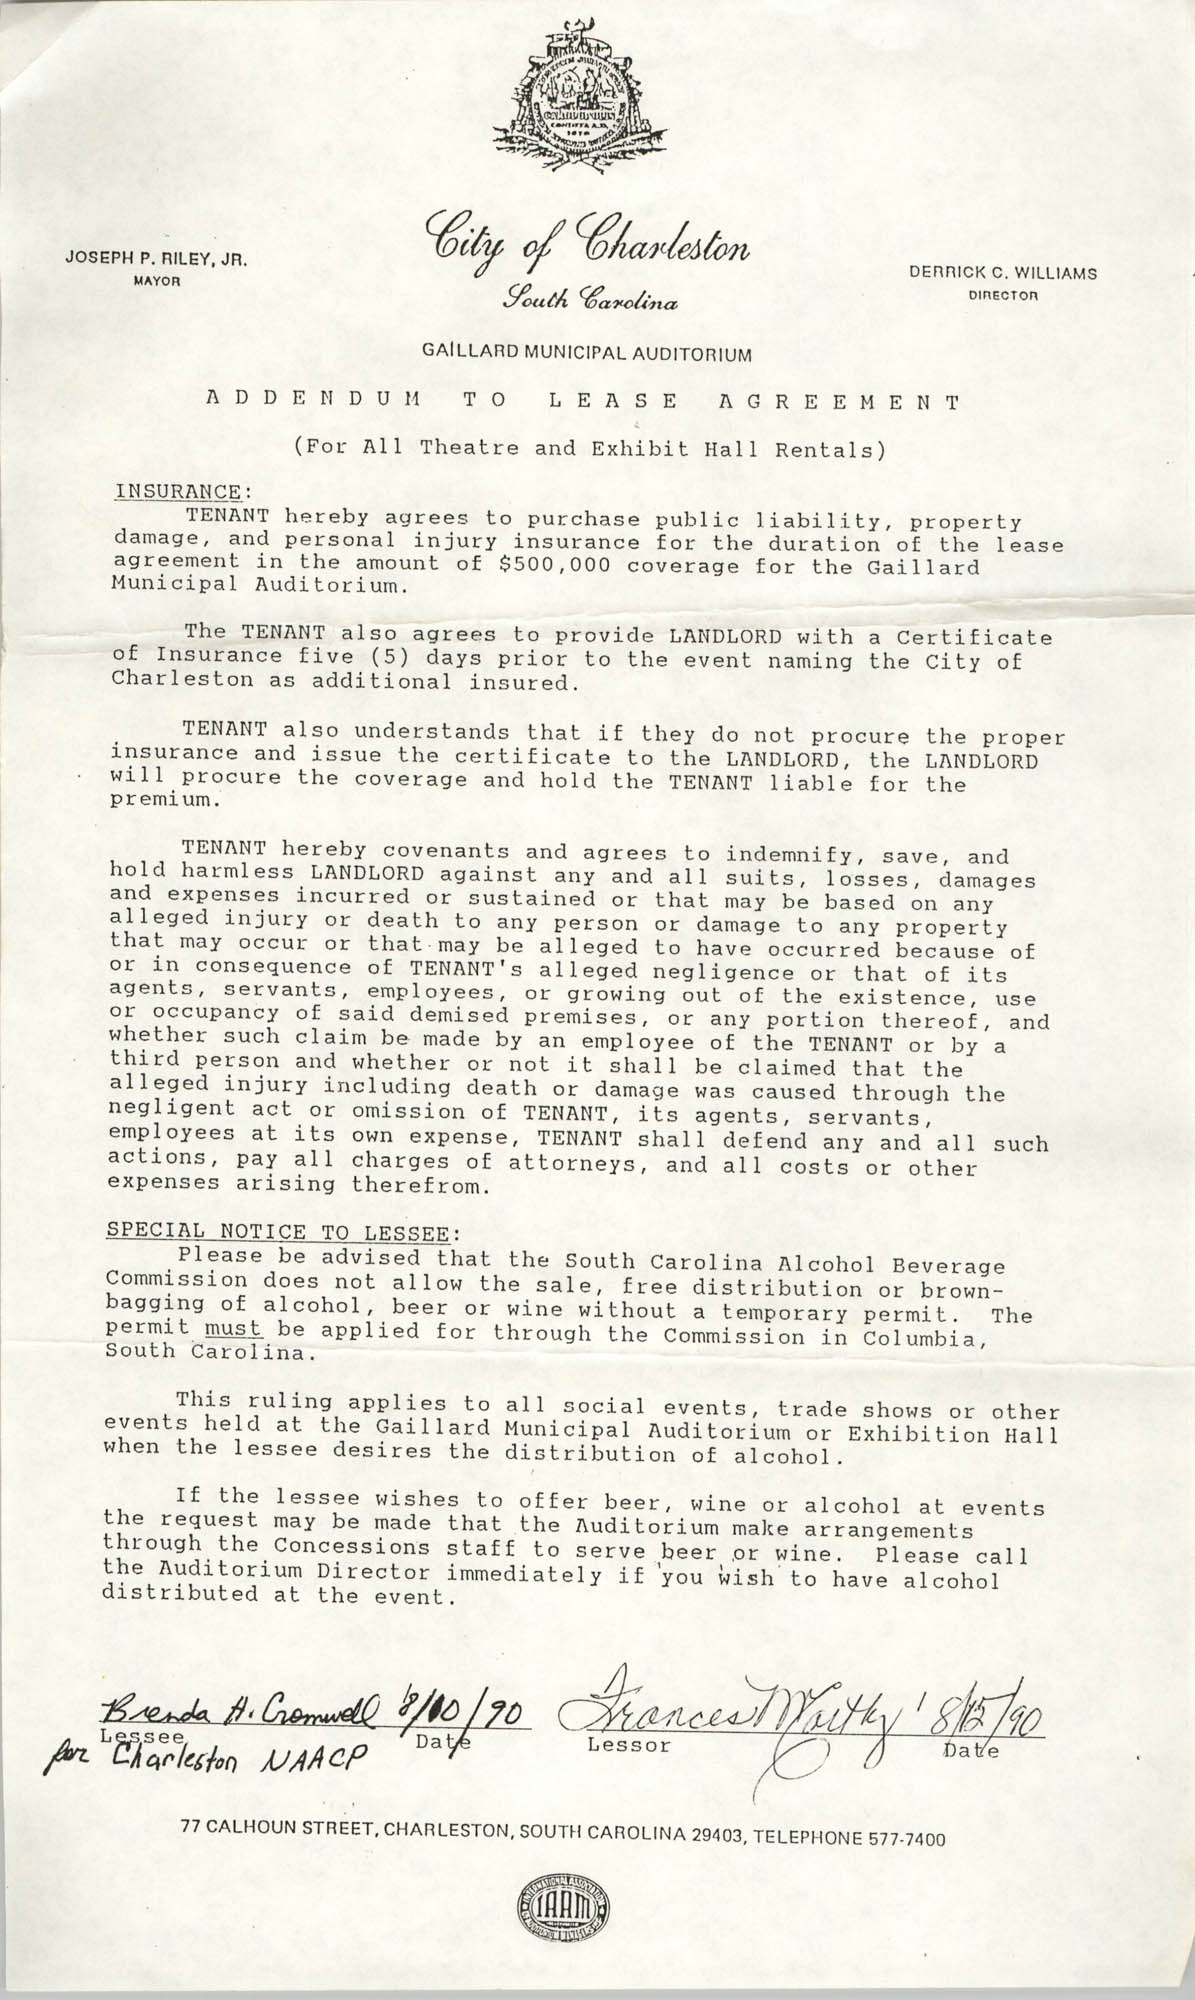 Addendum to Lease Agreement, Gaillard Municipal Auditorium, Charleston Branch of the NAACP, August 1990